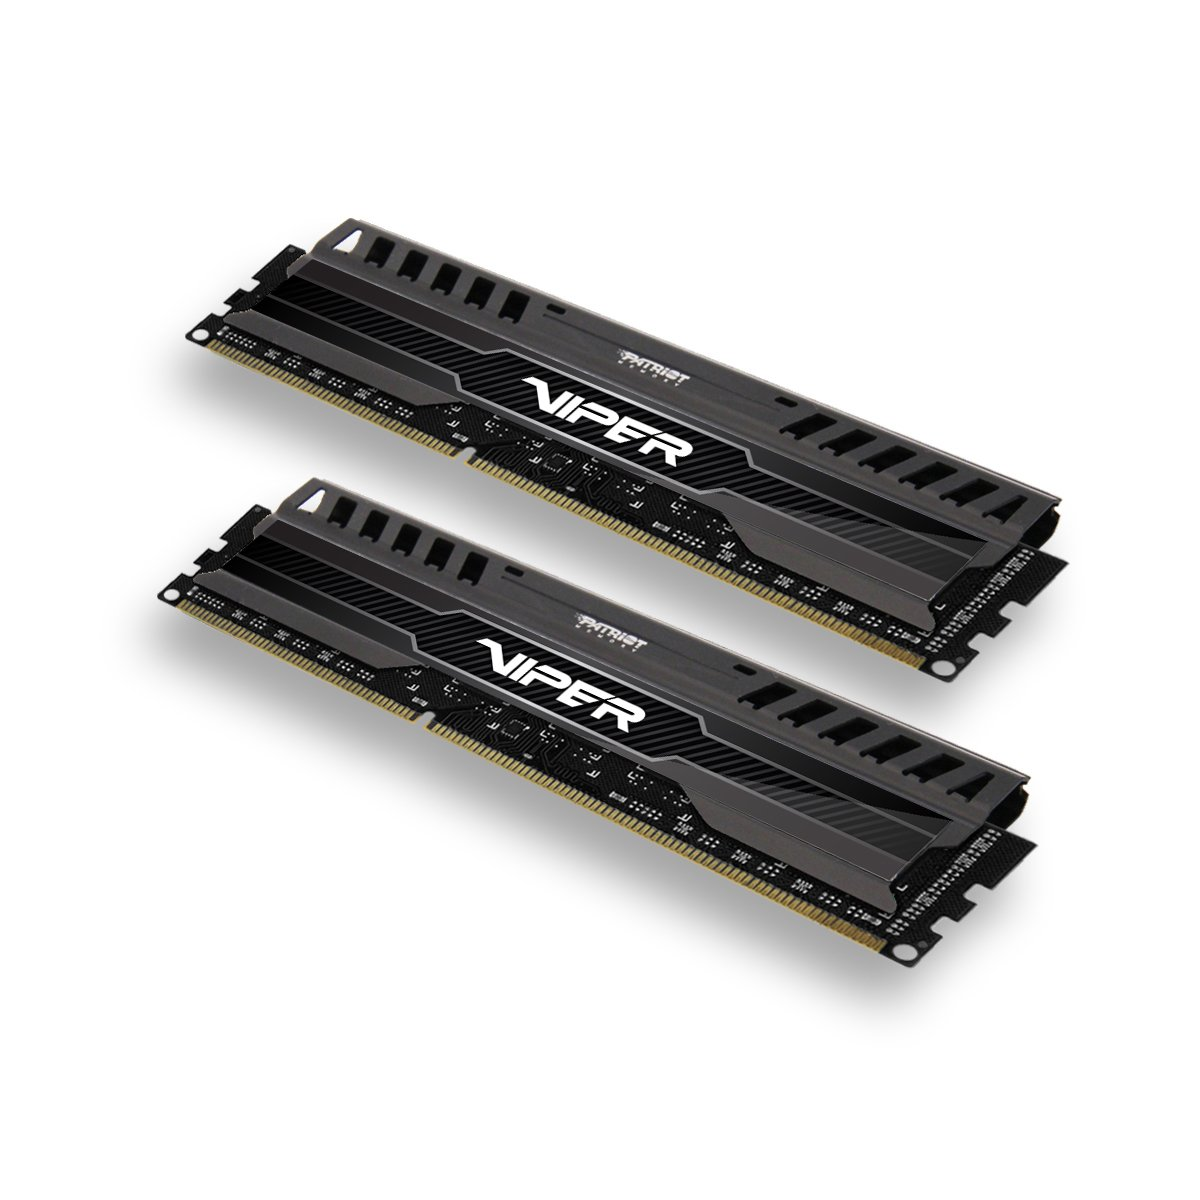 Patriot Viper 3 Series, Black Mamba, DDR3 8GB (2 x 4GB) 1600MHz Dual Channel Kit (PV38G160C9K)